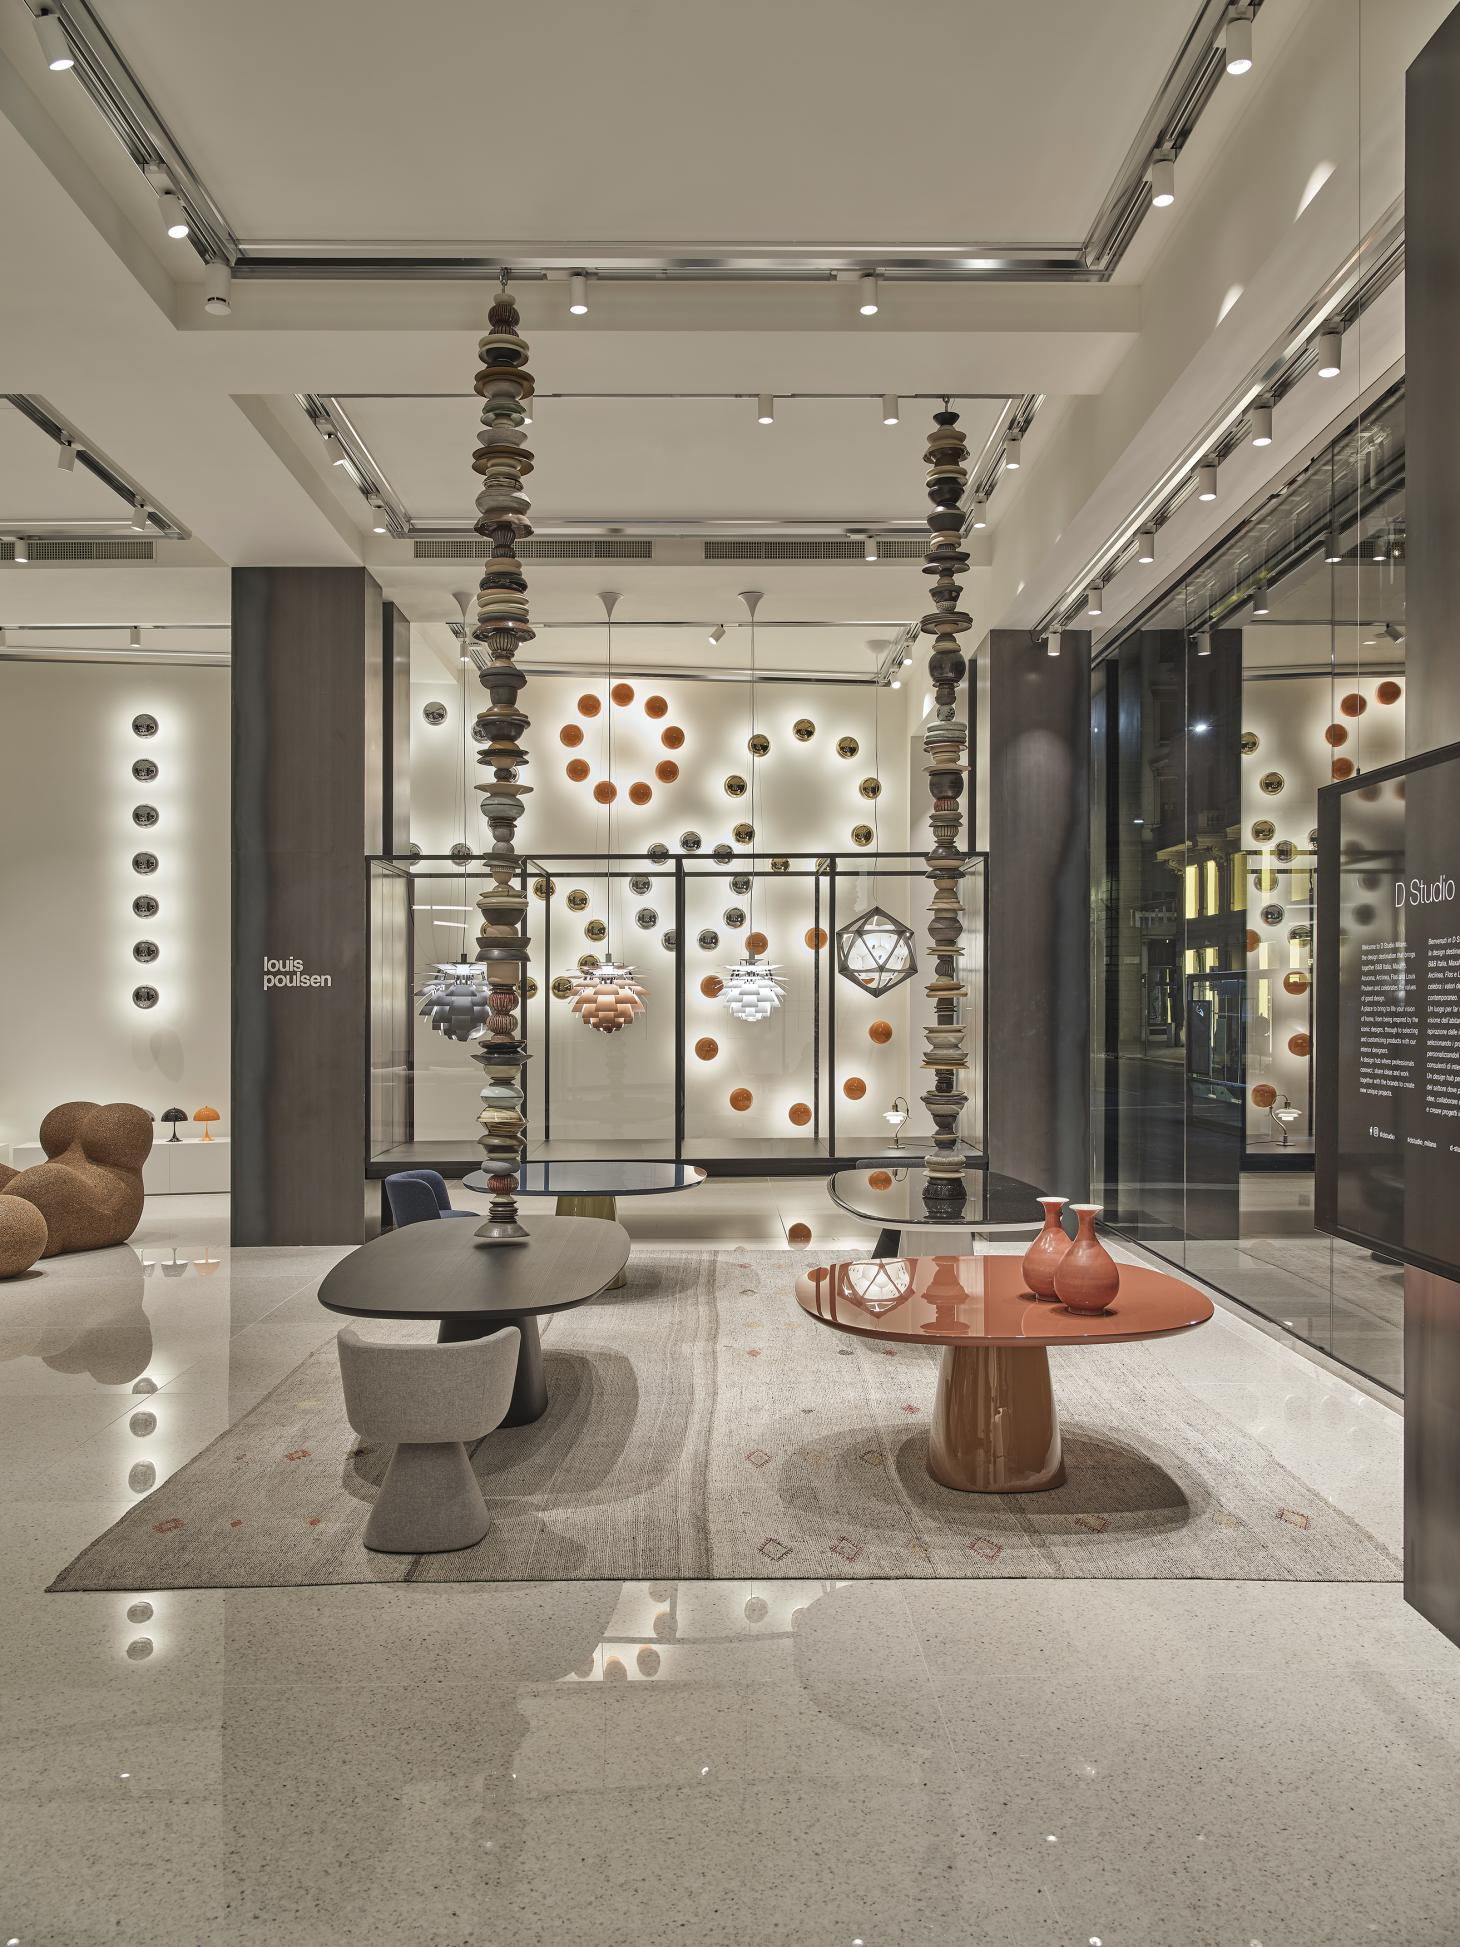 Interiors of D Studio Milano with high ceilings and two dining tables by Monica Armani for B&B in grey and red